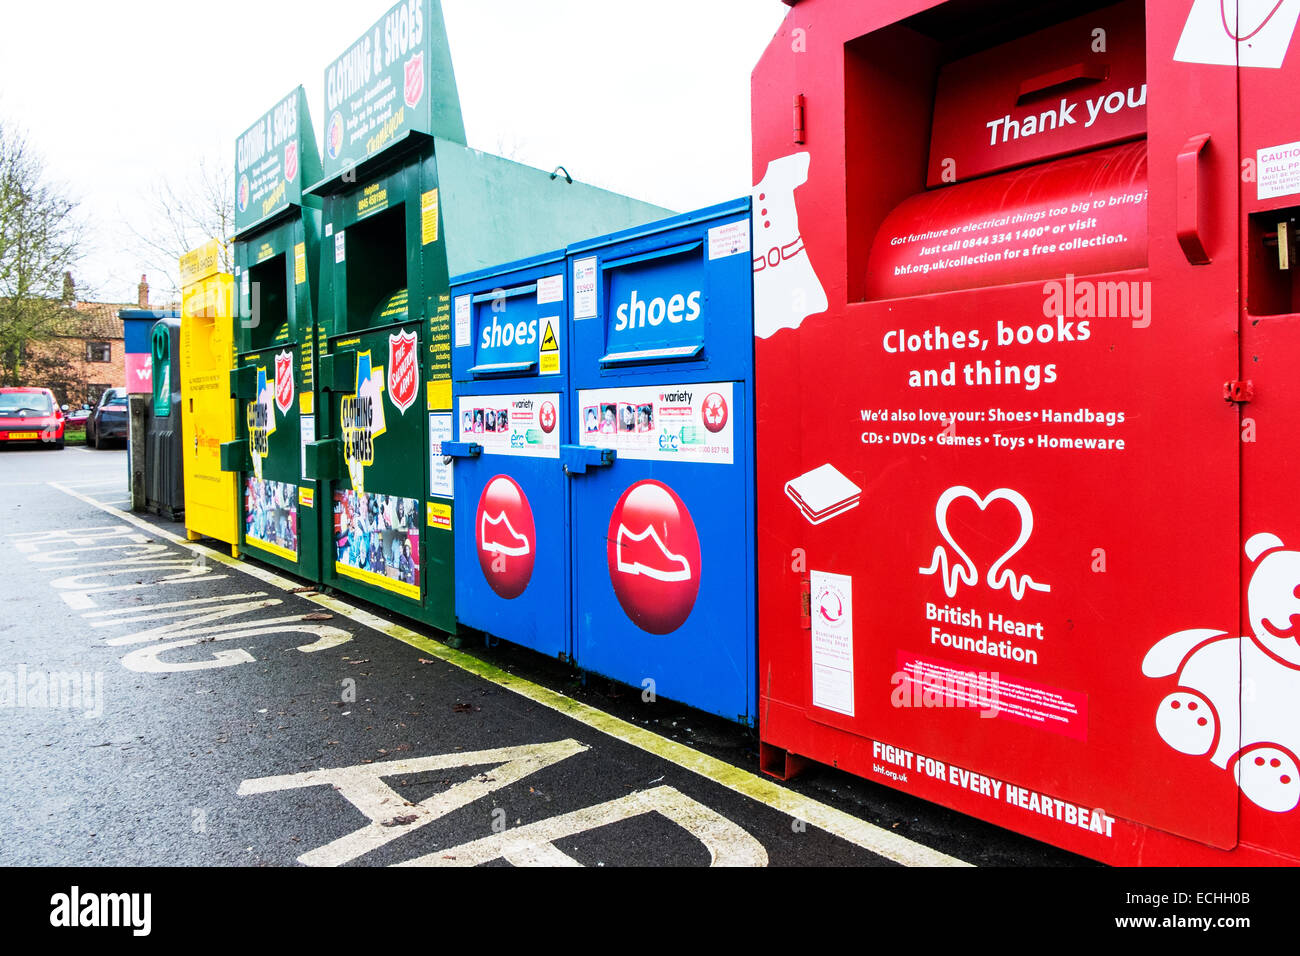 charity recycling bins stock photos charity recycling bins stock